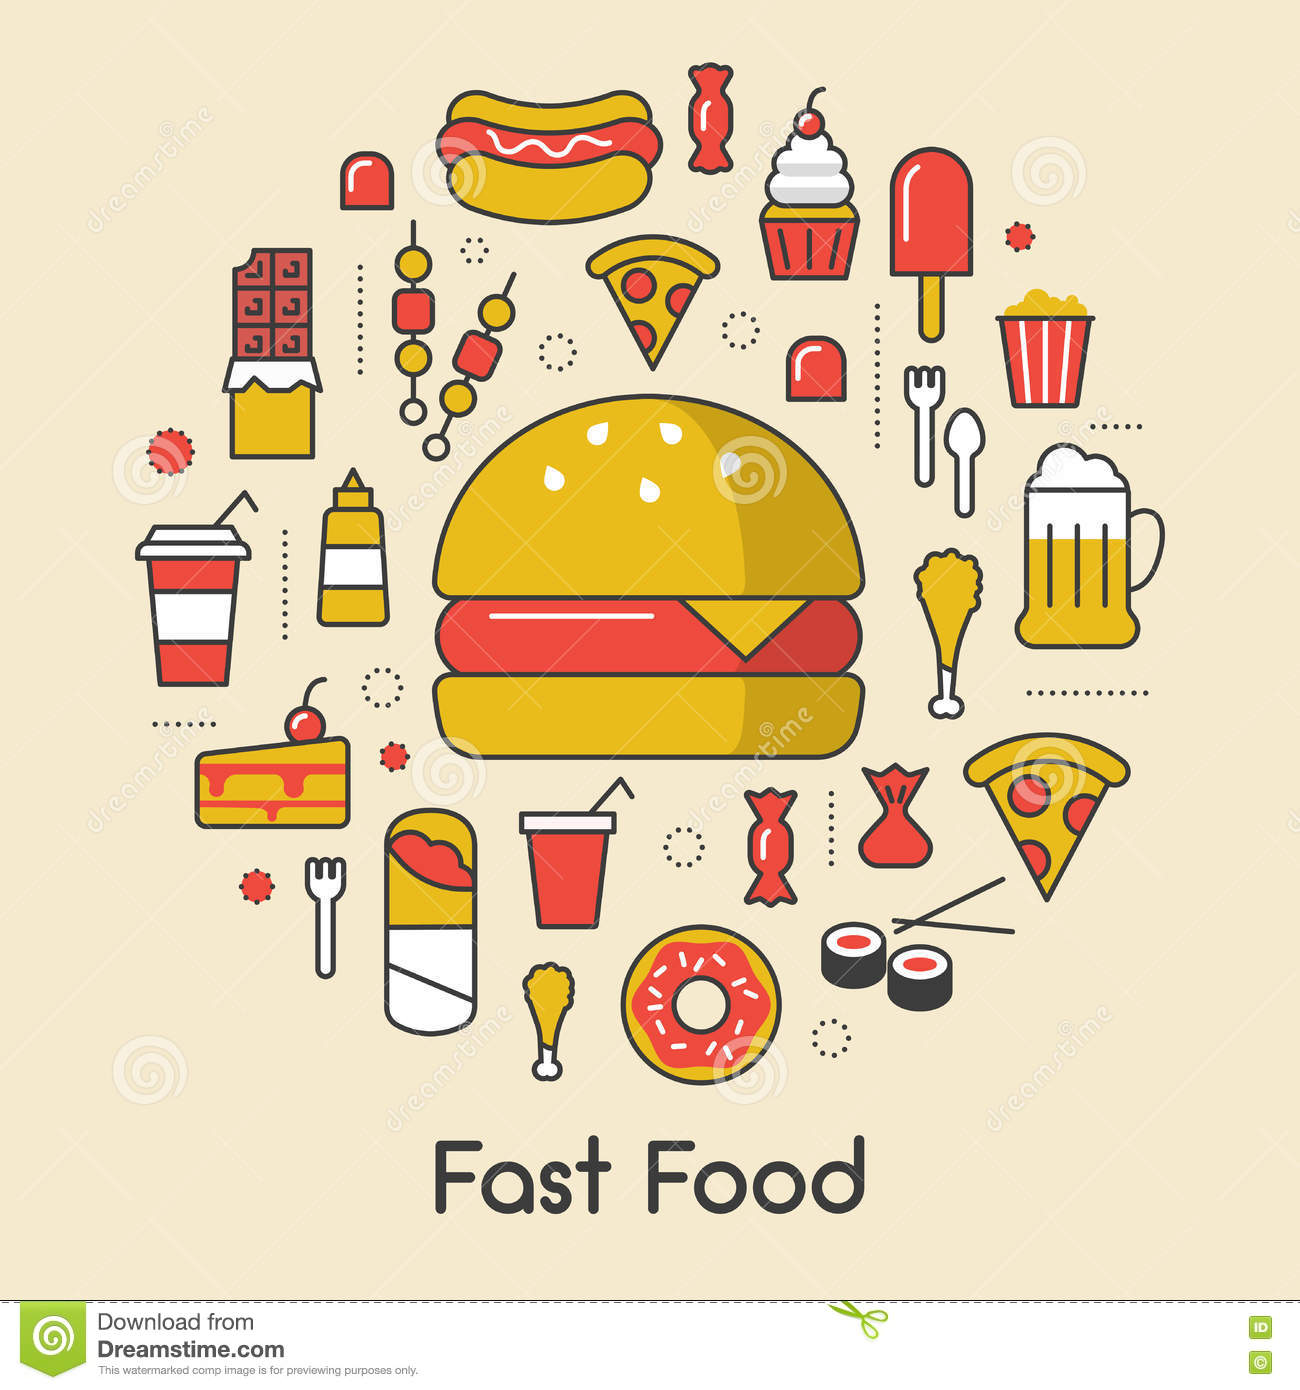 Fast Food Line Art Thin Icons Set With Burger Pizza And